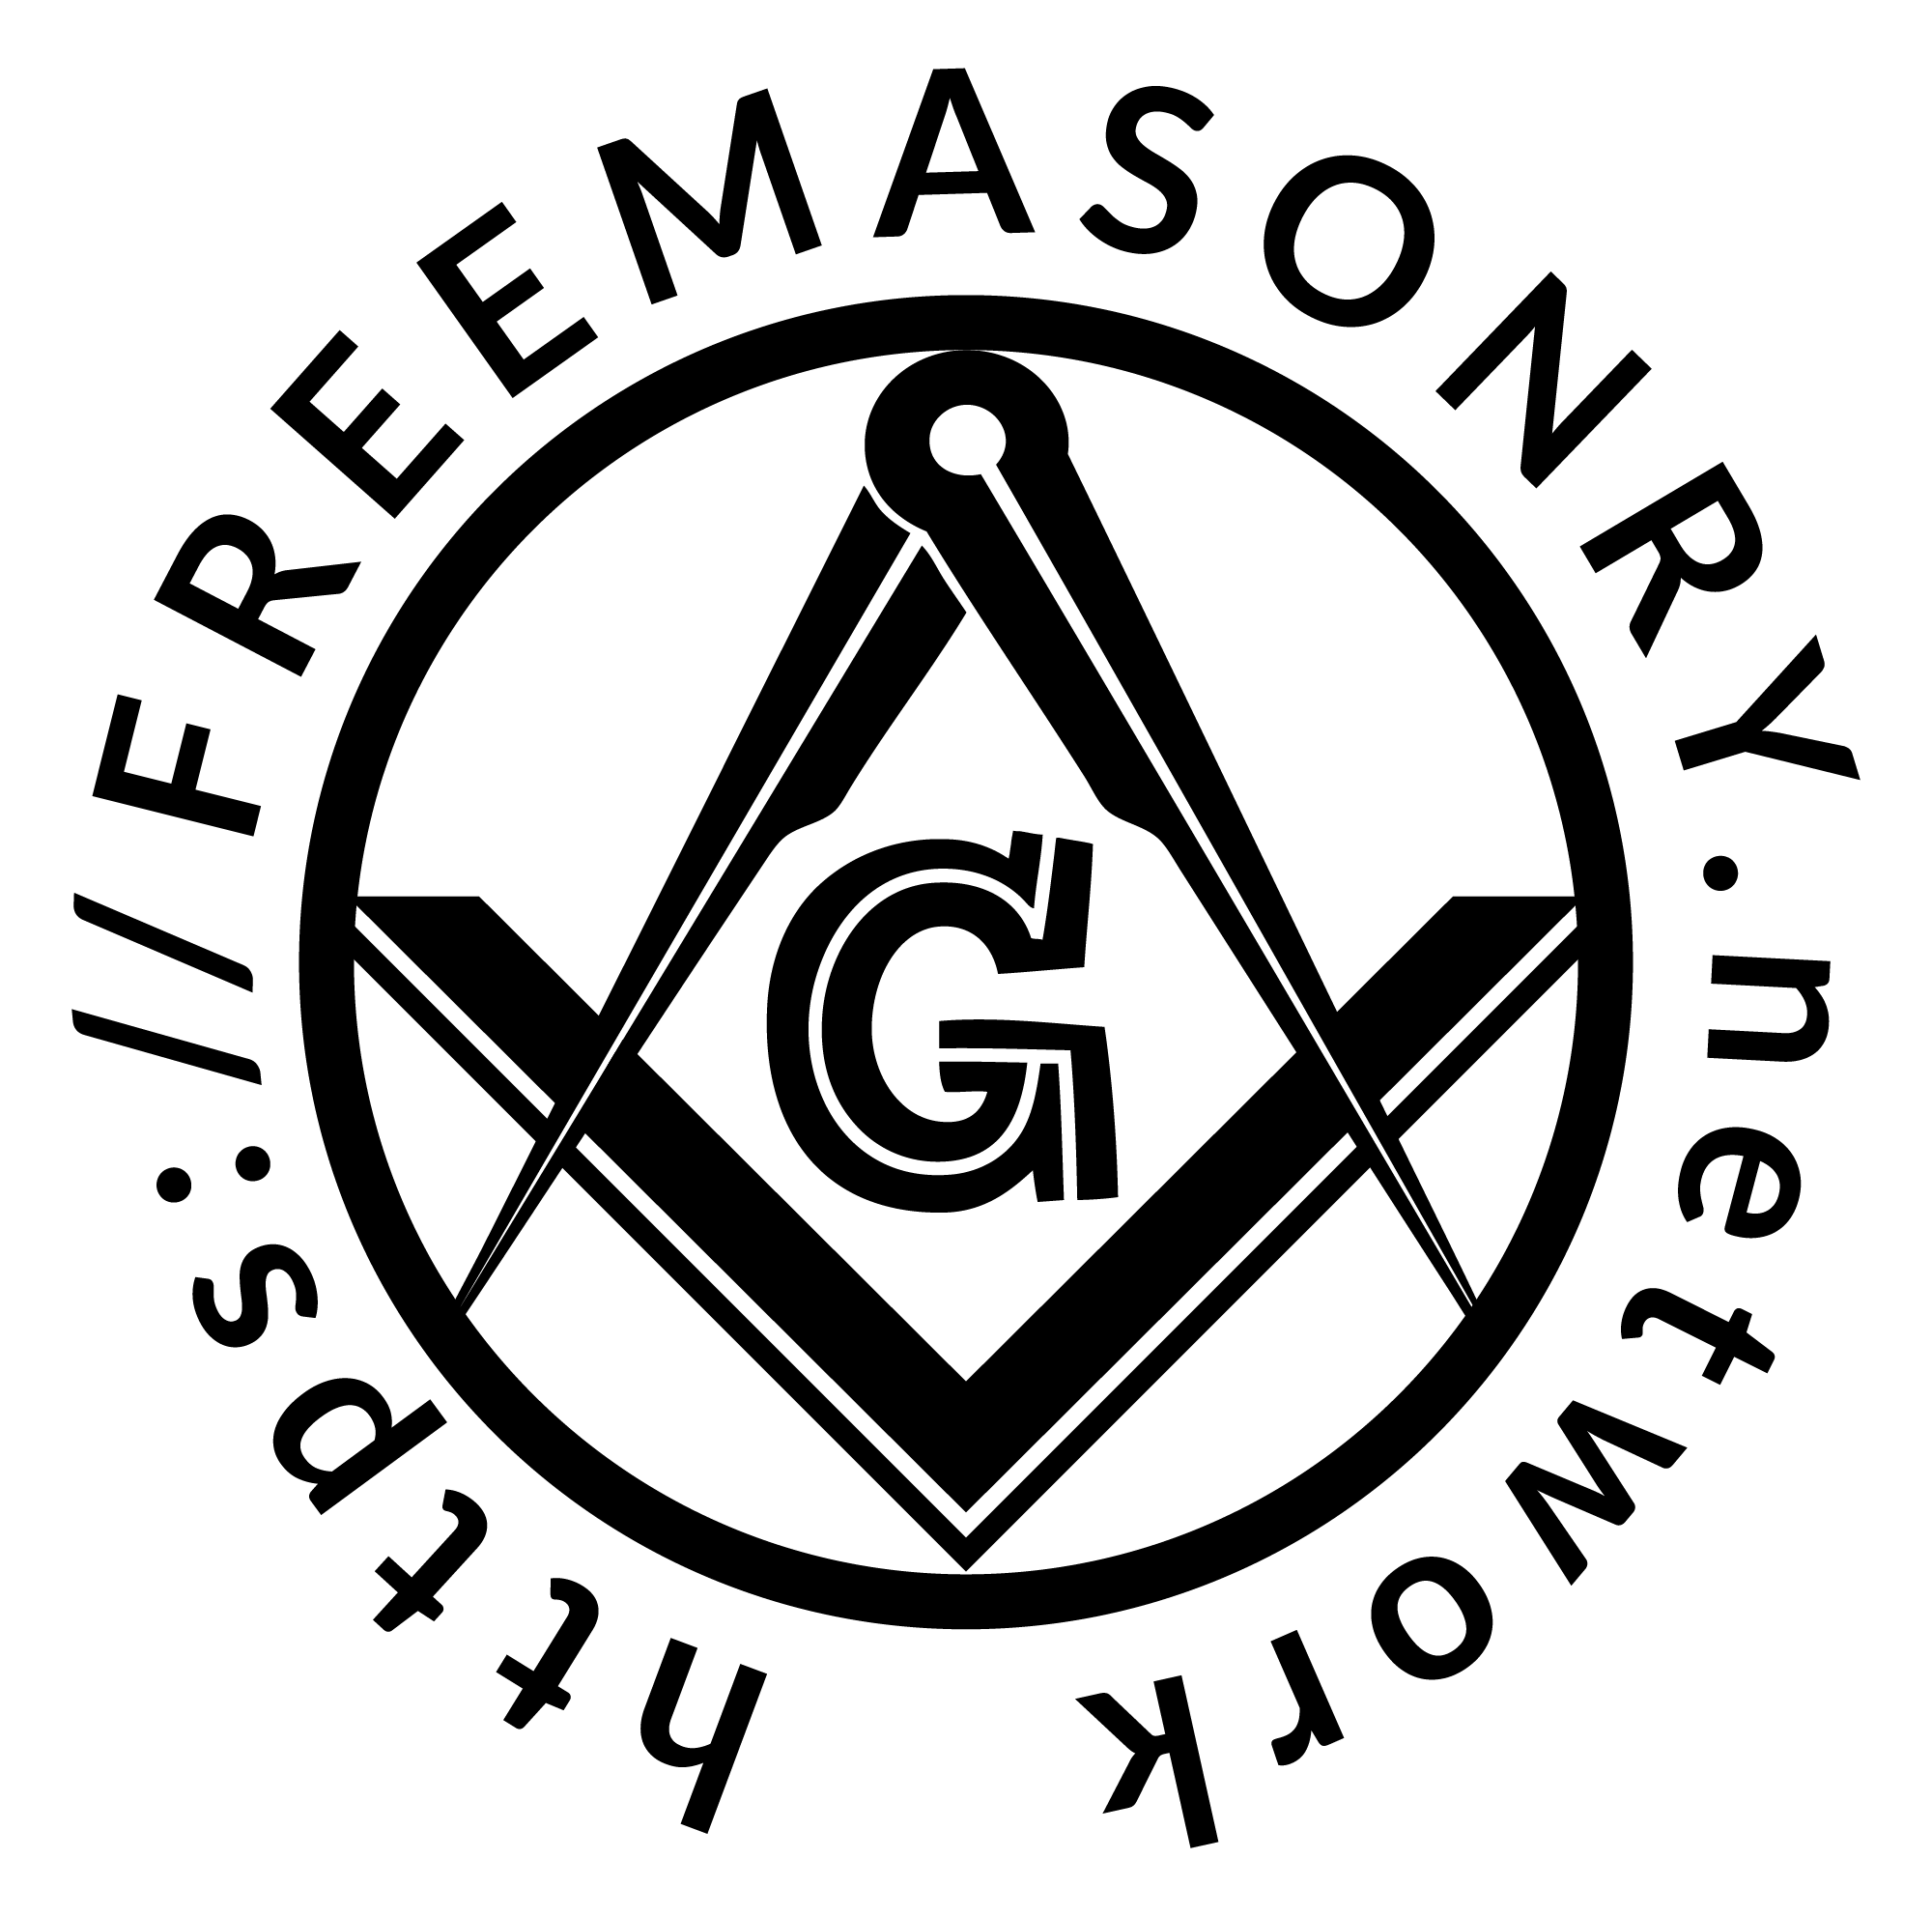 FAMOUS MILITARY MEN - FREEMASONS